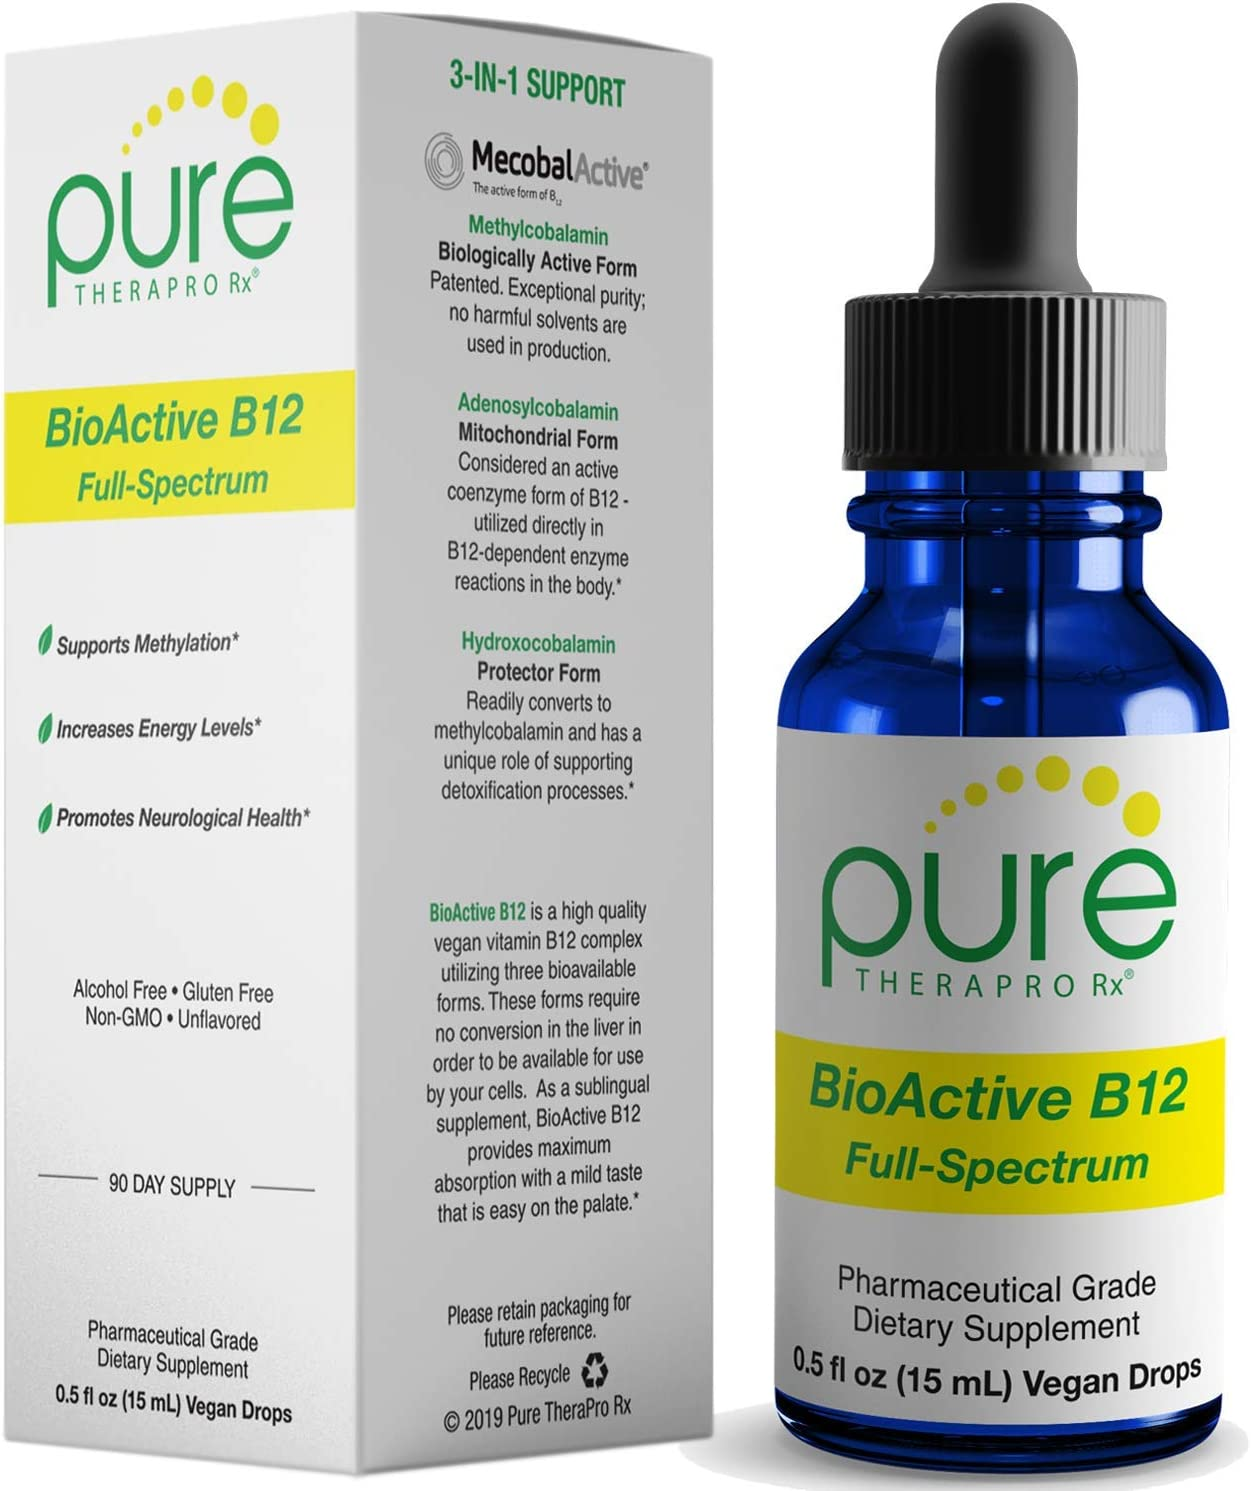 New! BioActive B12 Full-Spectrum (Sublingual Drops) 90 Day Supply: 4,000 mcg Per Serving | Includes 3-in-1 Bioavailable: Methylcobalamin, Adenosylcobalamin and Hydroxocobalamin | Vegan